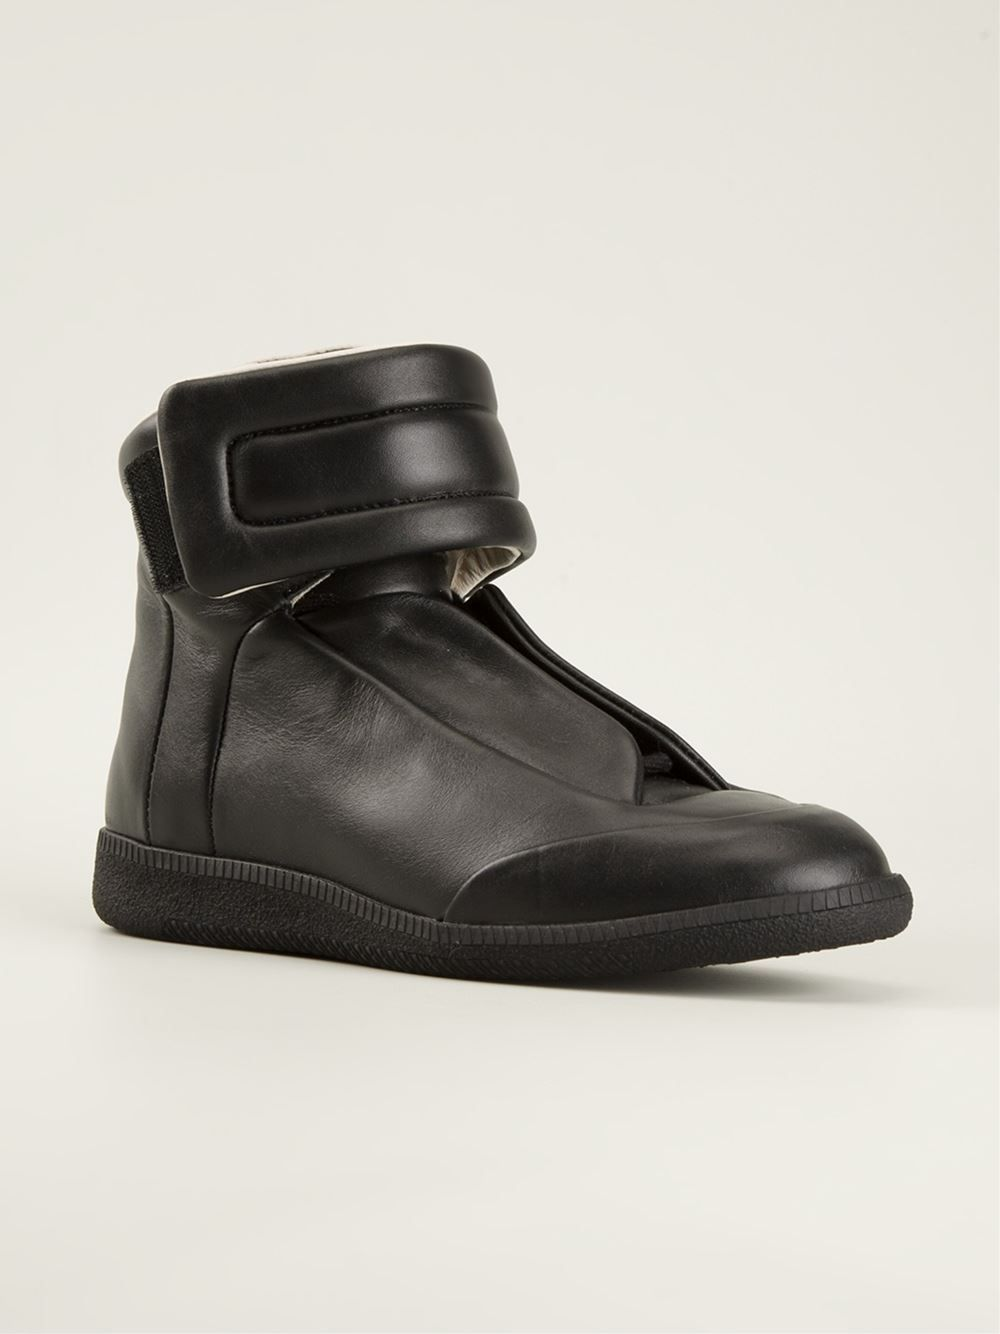 maison-martin-margiela-black-laceless-hi-top-sneakers-product-1-24430836-0-134791548-normal.jpeg (JPEG Image, 1000 × 1334 pixels)